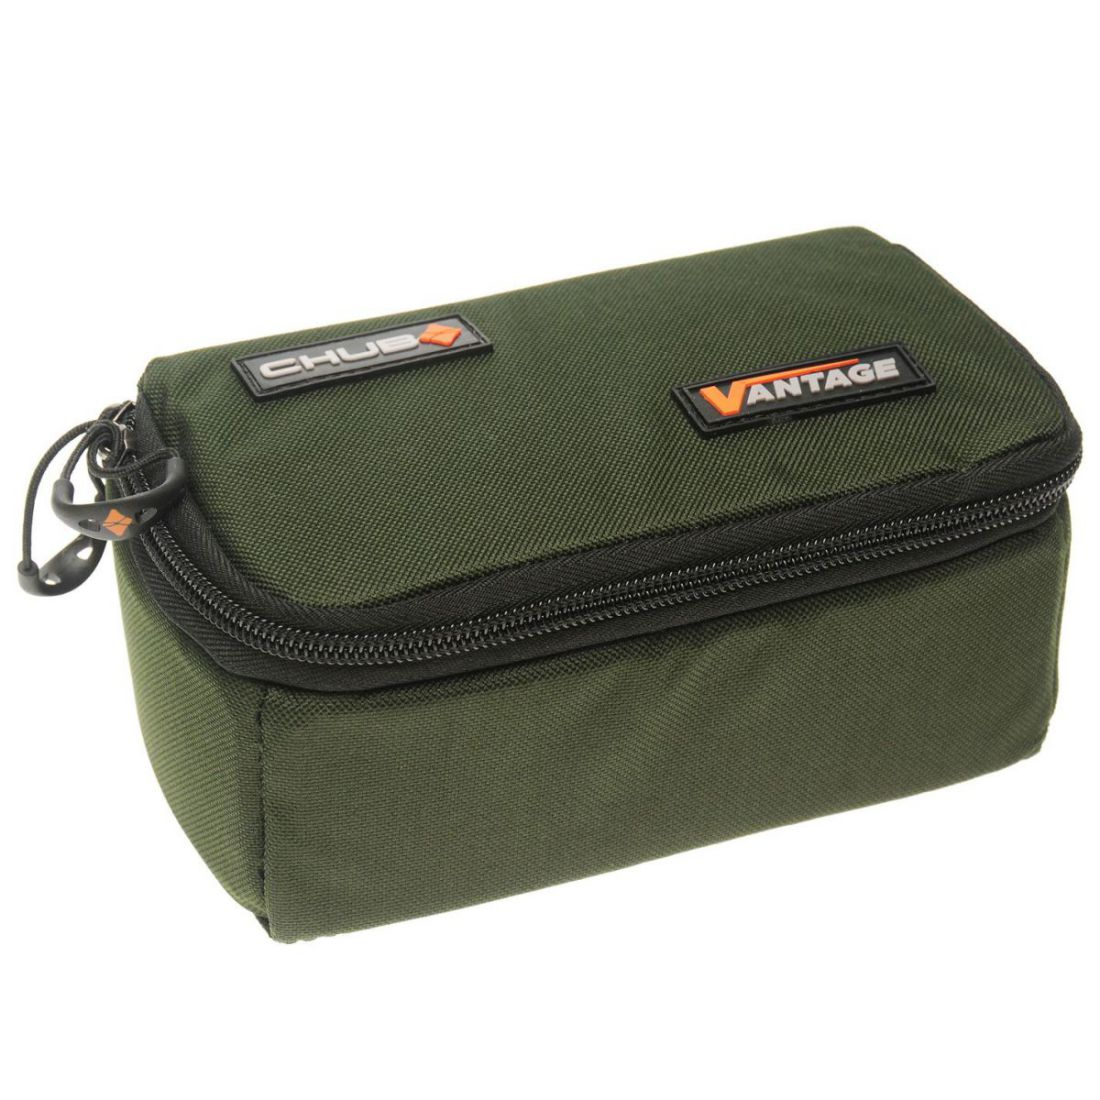 68a932136d075 Chub Vantage Accessory Box Fishing Accessory Bag Holdall Zip Compact ...